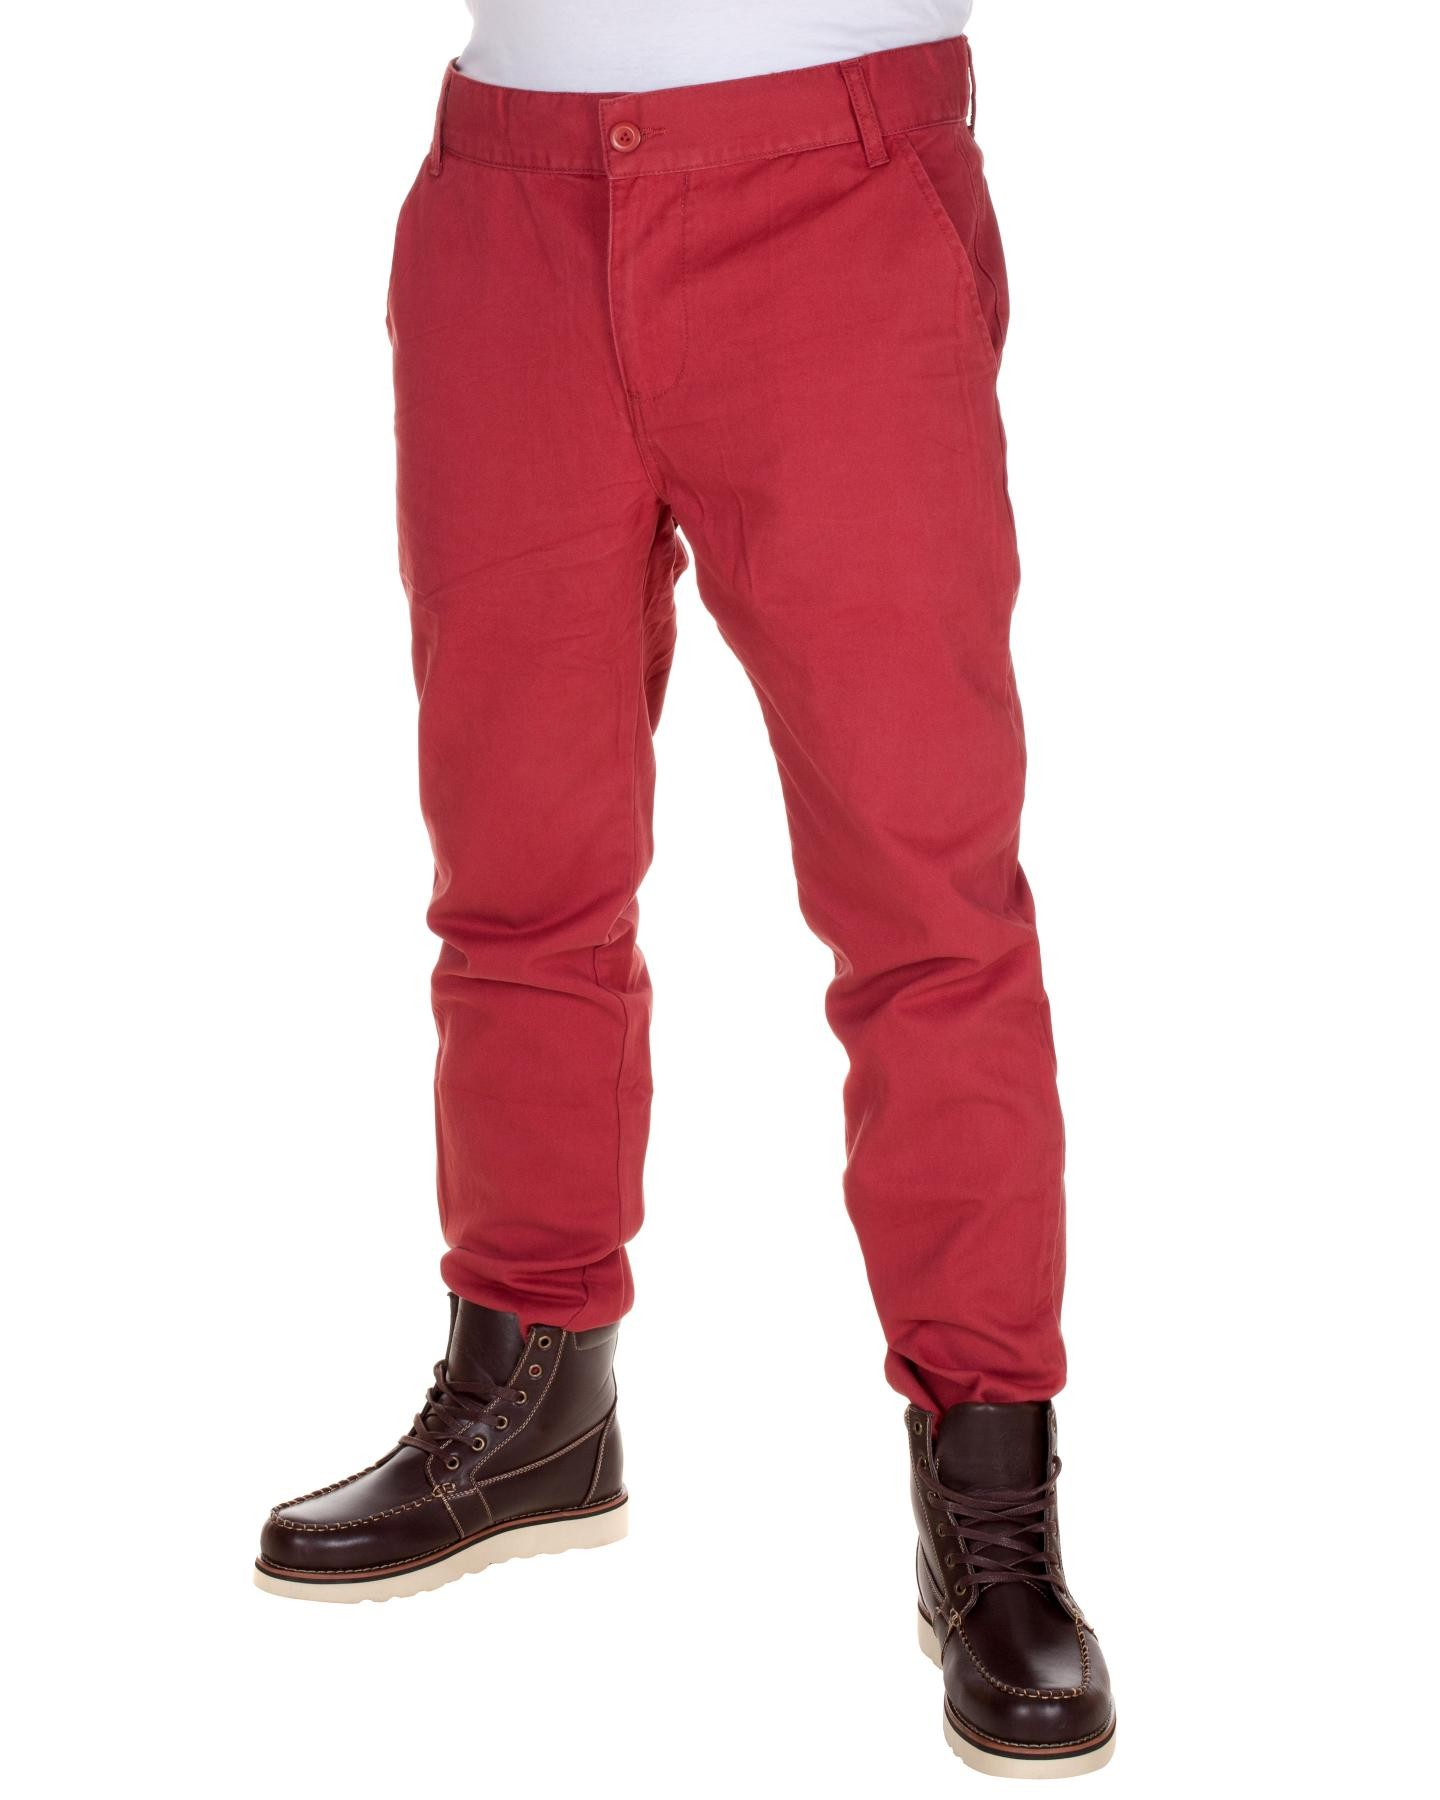 Blue-Inc-Mens-Basic-Twill-Chino-Style-Trousers-Red-Cotton